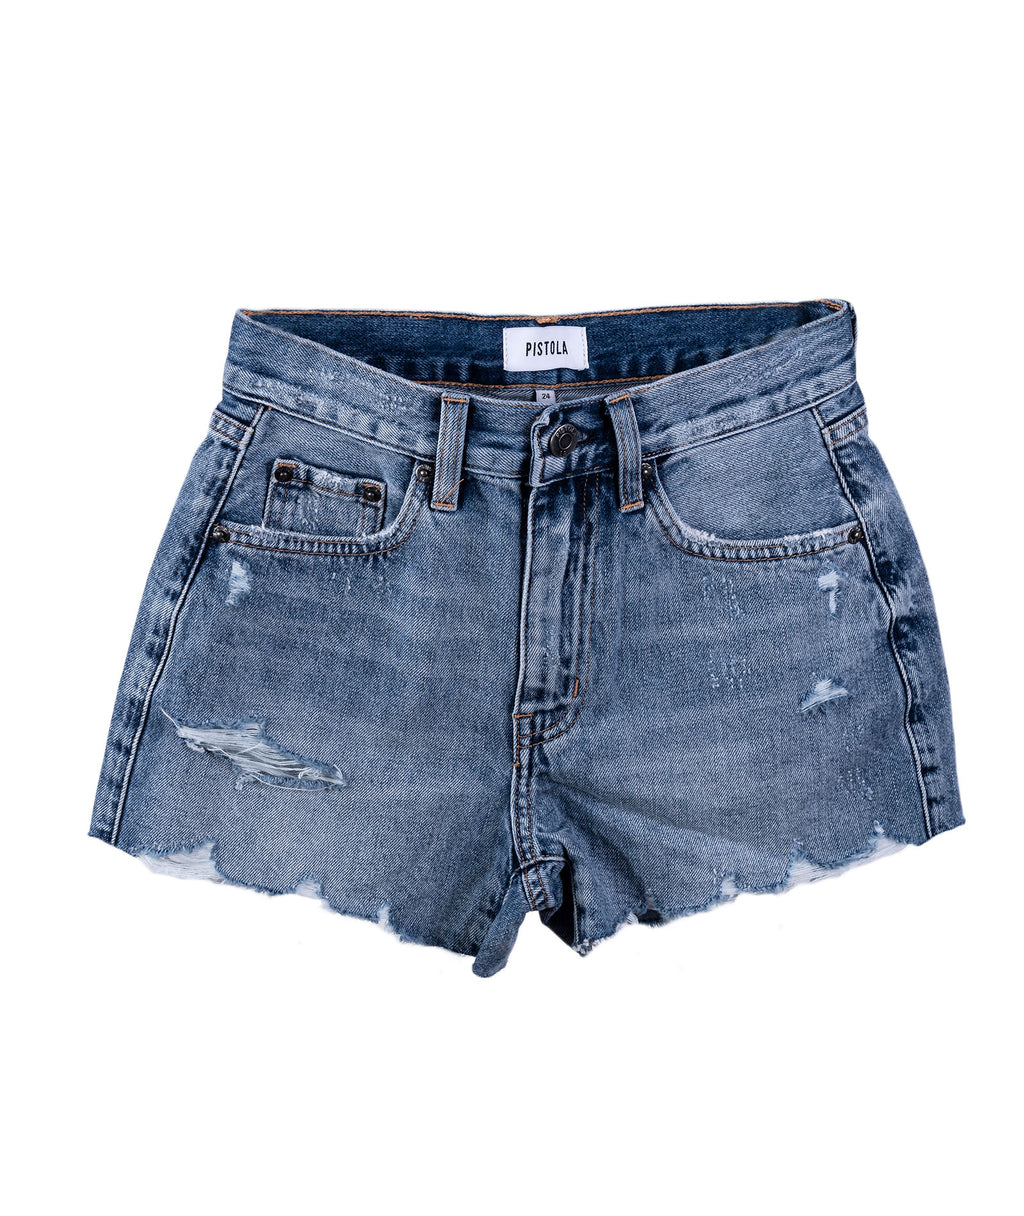 Pistola Women Nova First Time Jean Shorts